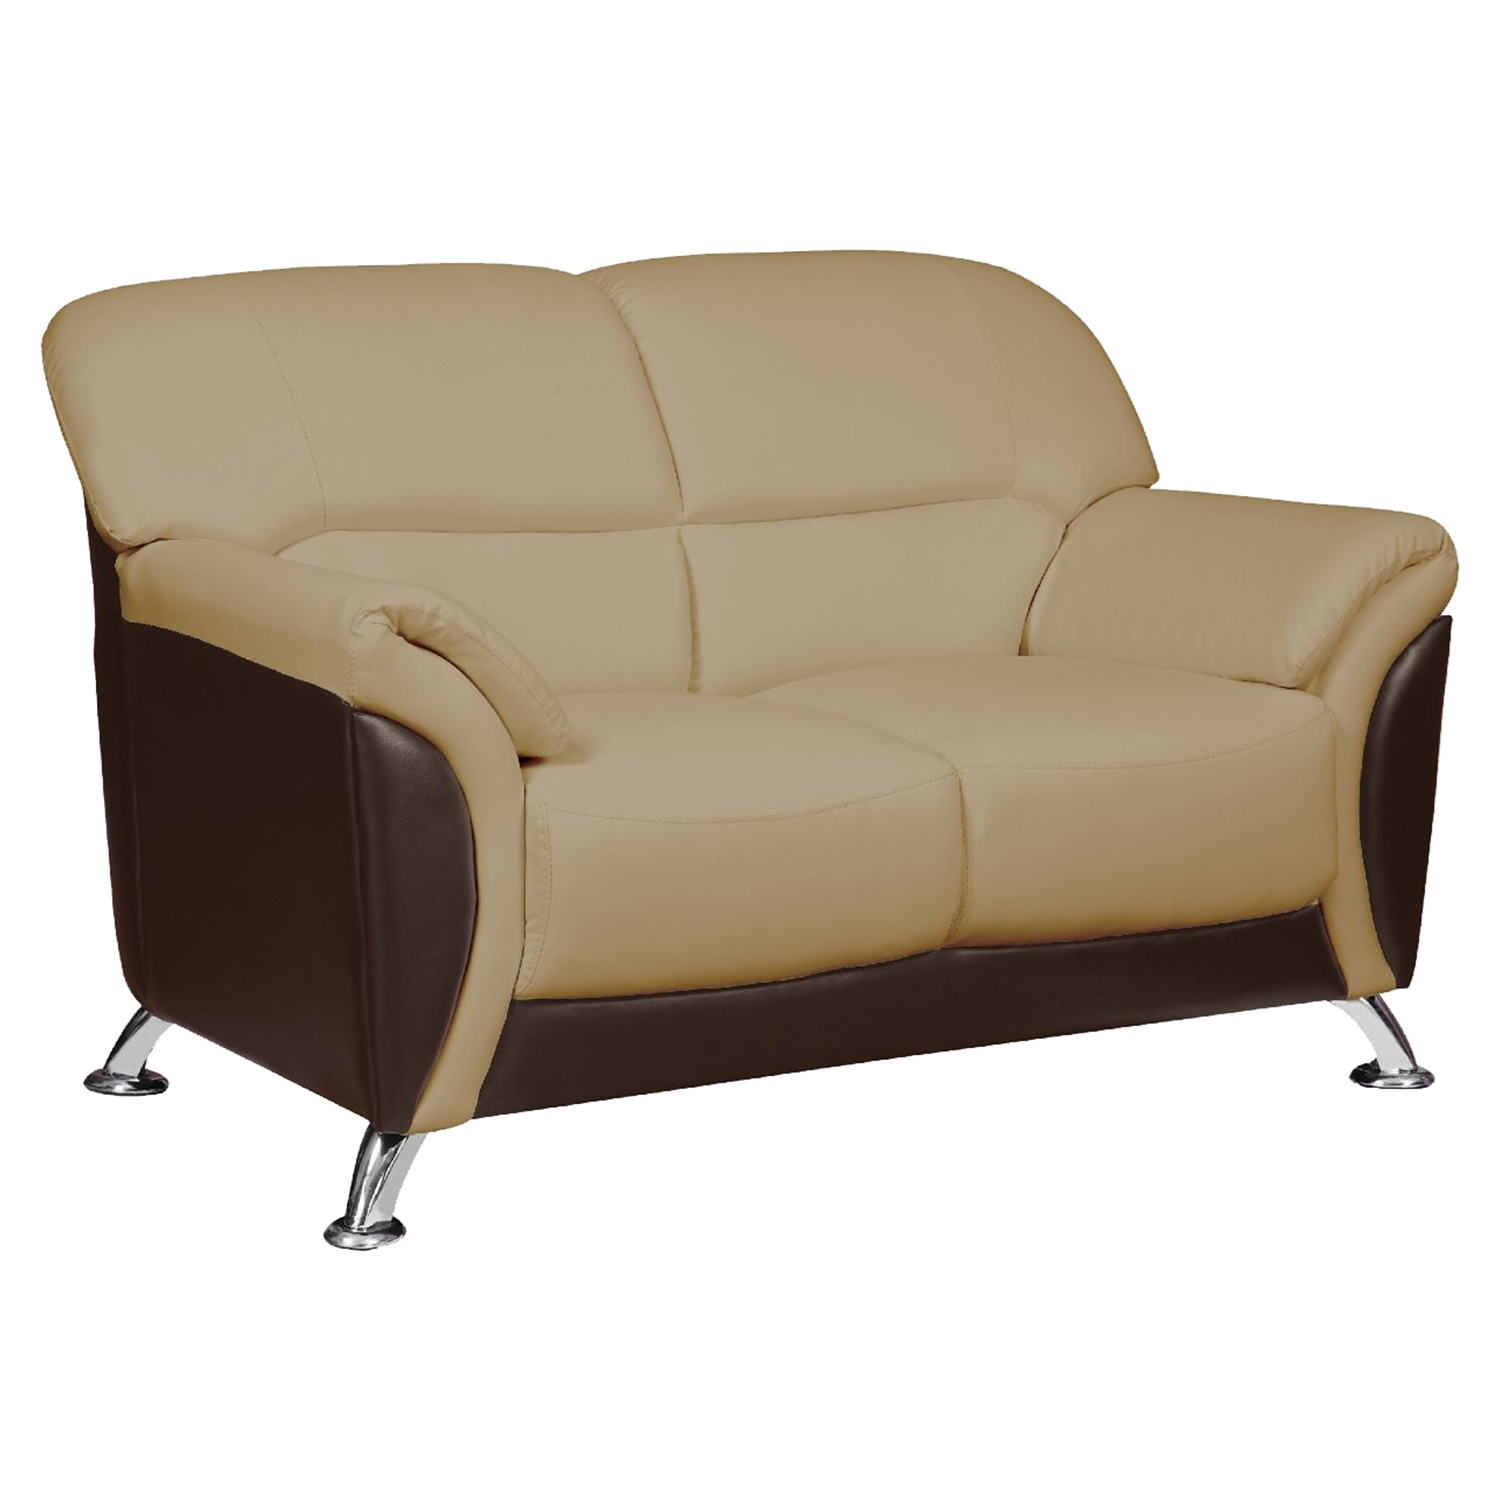 Maxwell Sofa Set in Cappuccino/Chocolate - GLO-U9103-CAPP-CHOC-SET